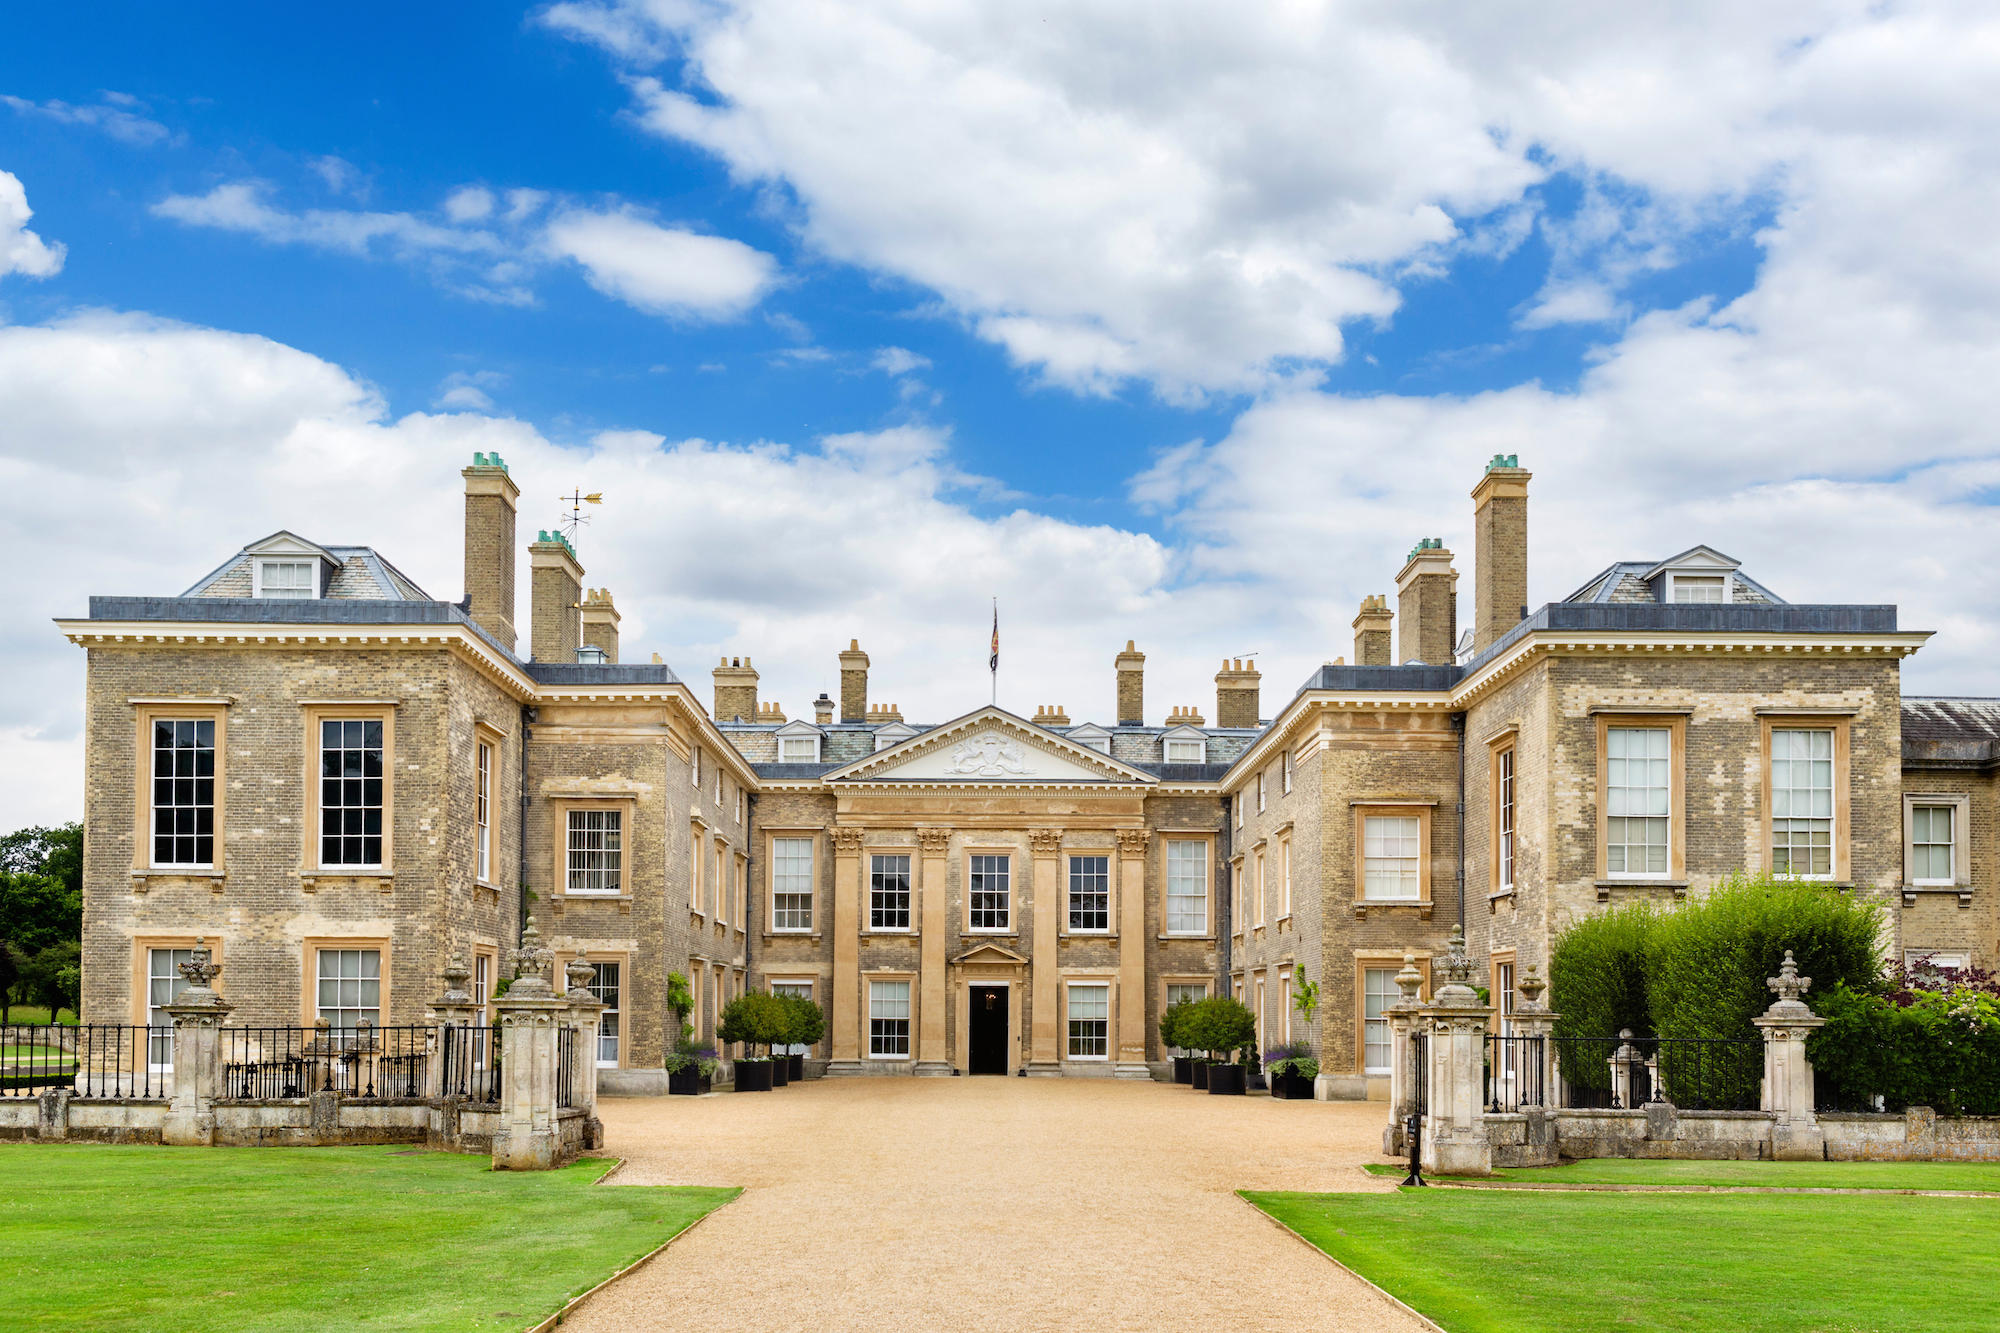 The front of Althorp house, seat of Earl Spencer and childhood home of Diana Princess of Wales, Northamptonshire, England, UK